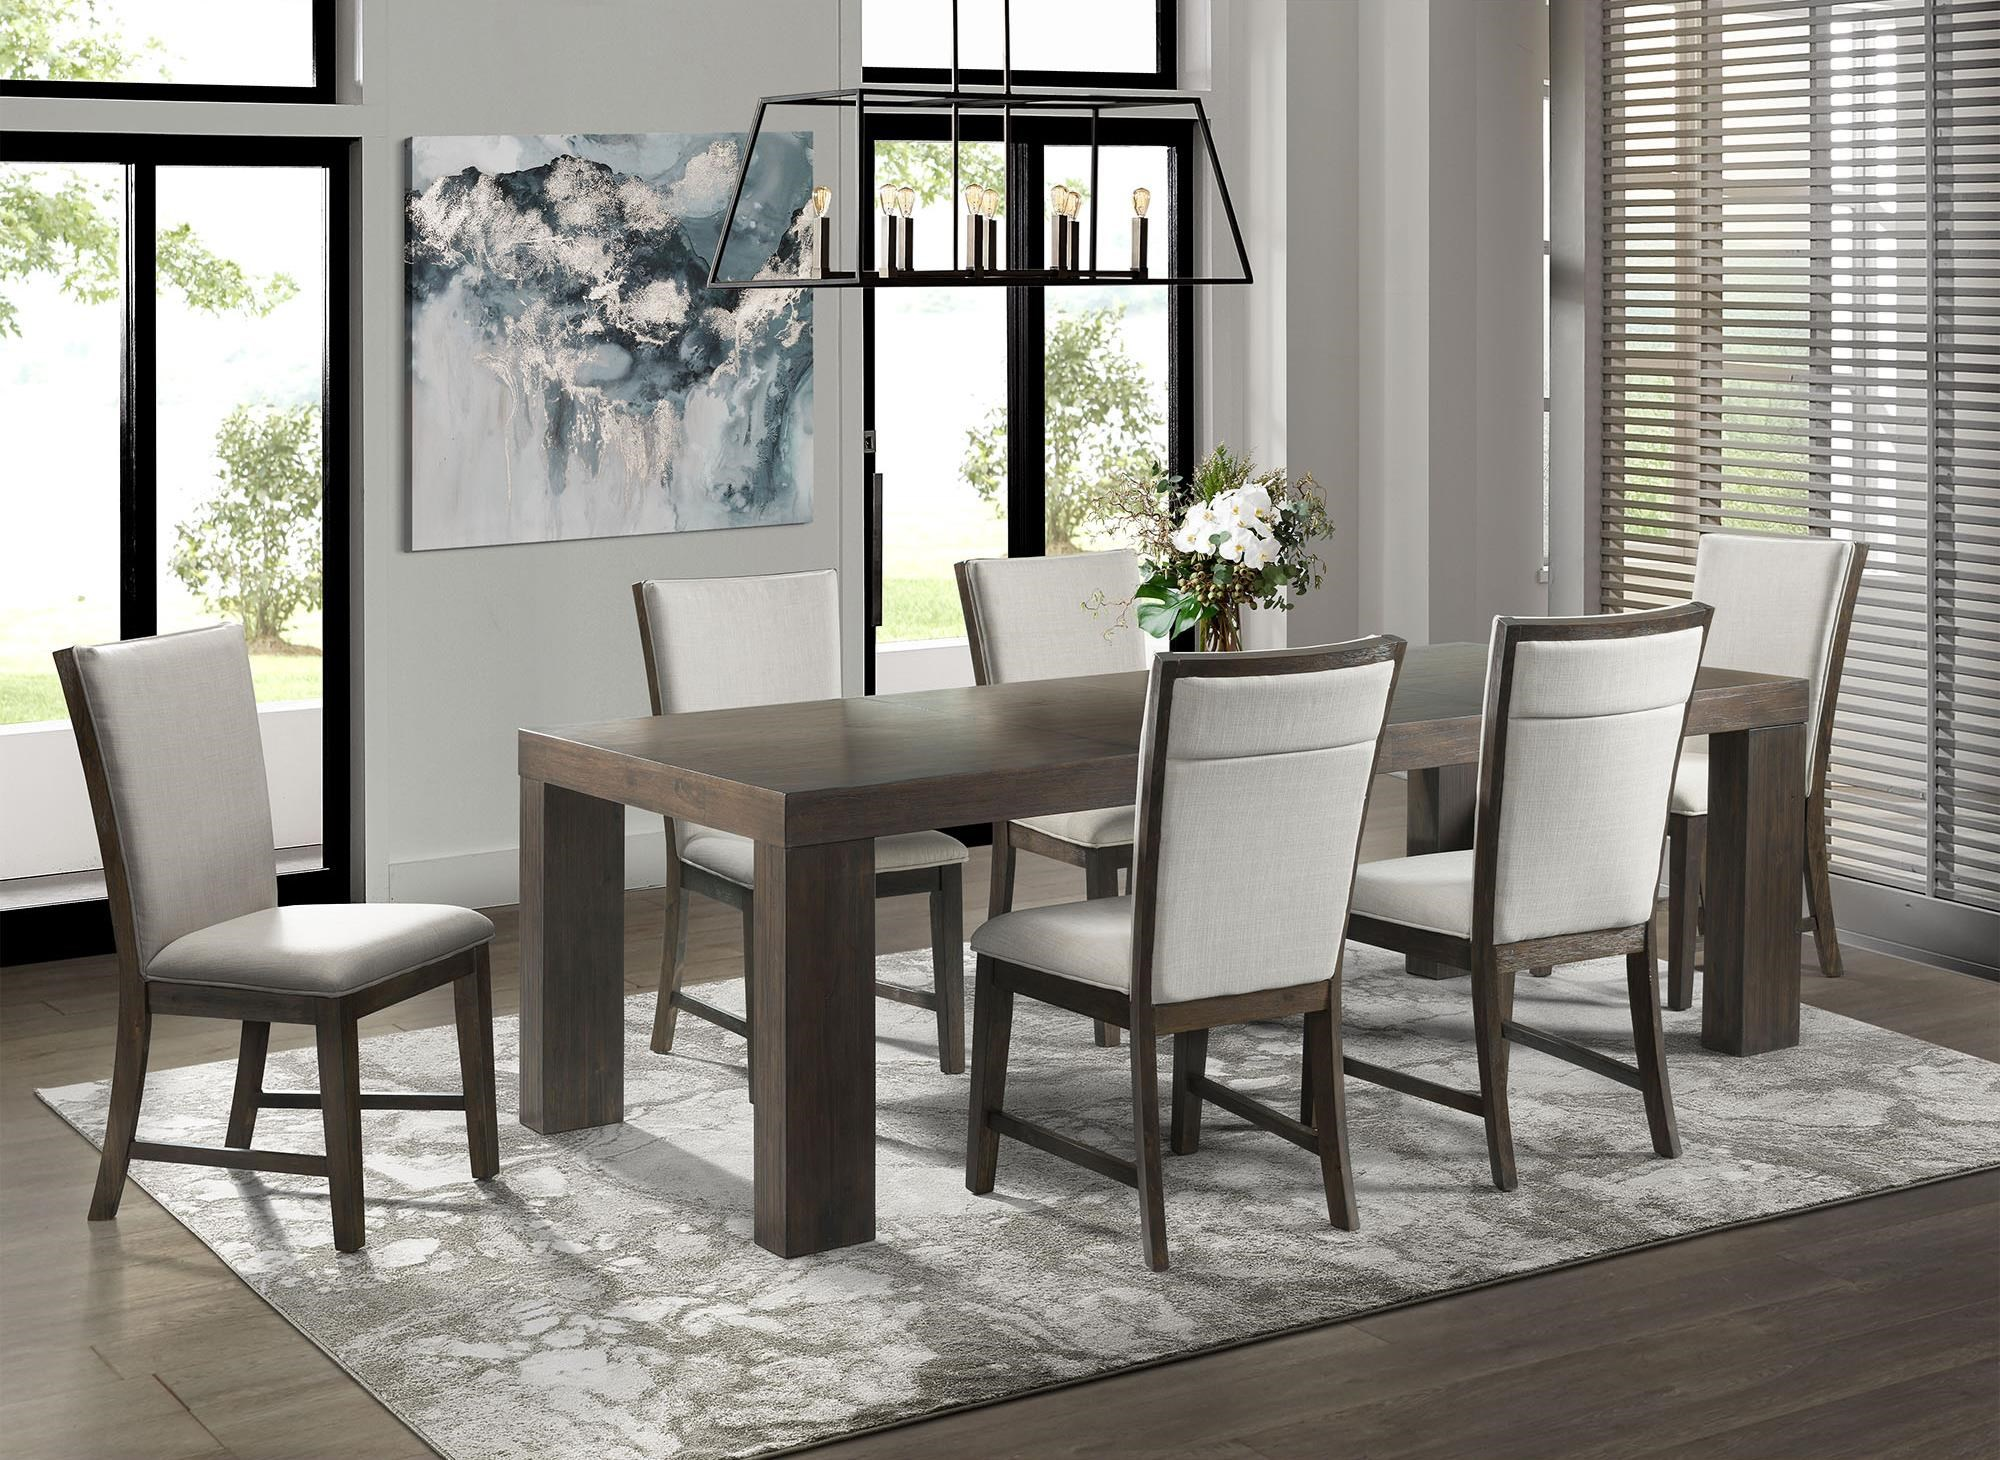 Grady Dining Table Set with 6 chairs by Elements International at Johnny Janosik